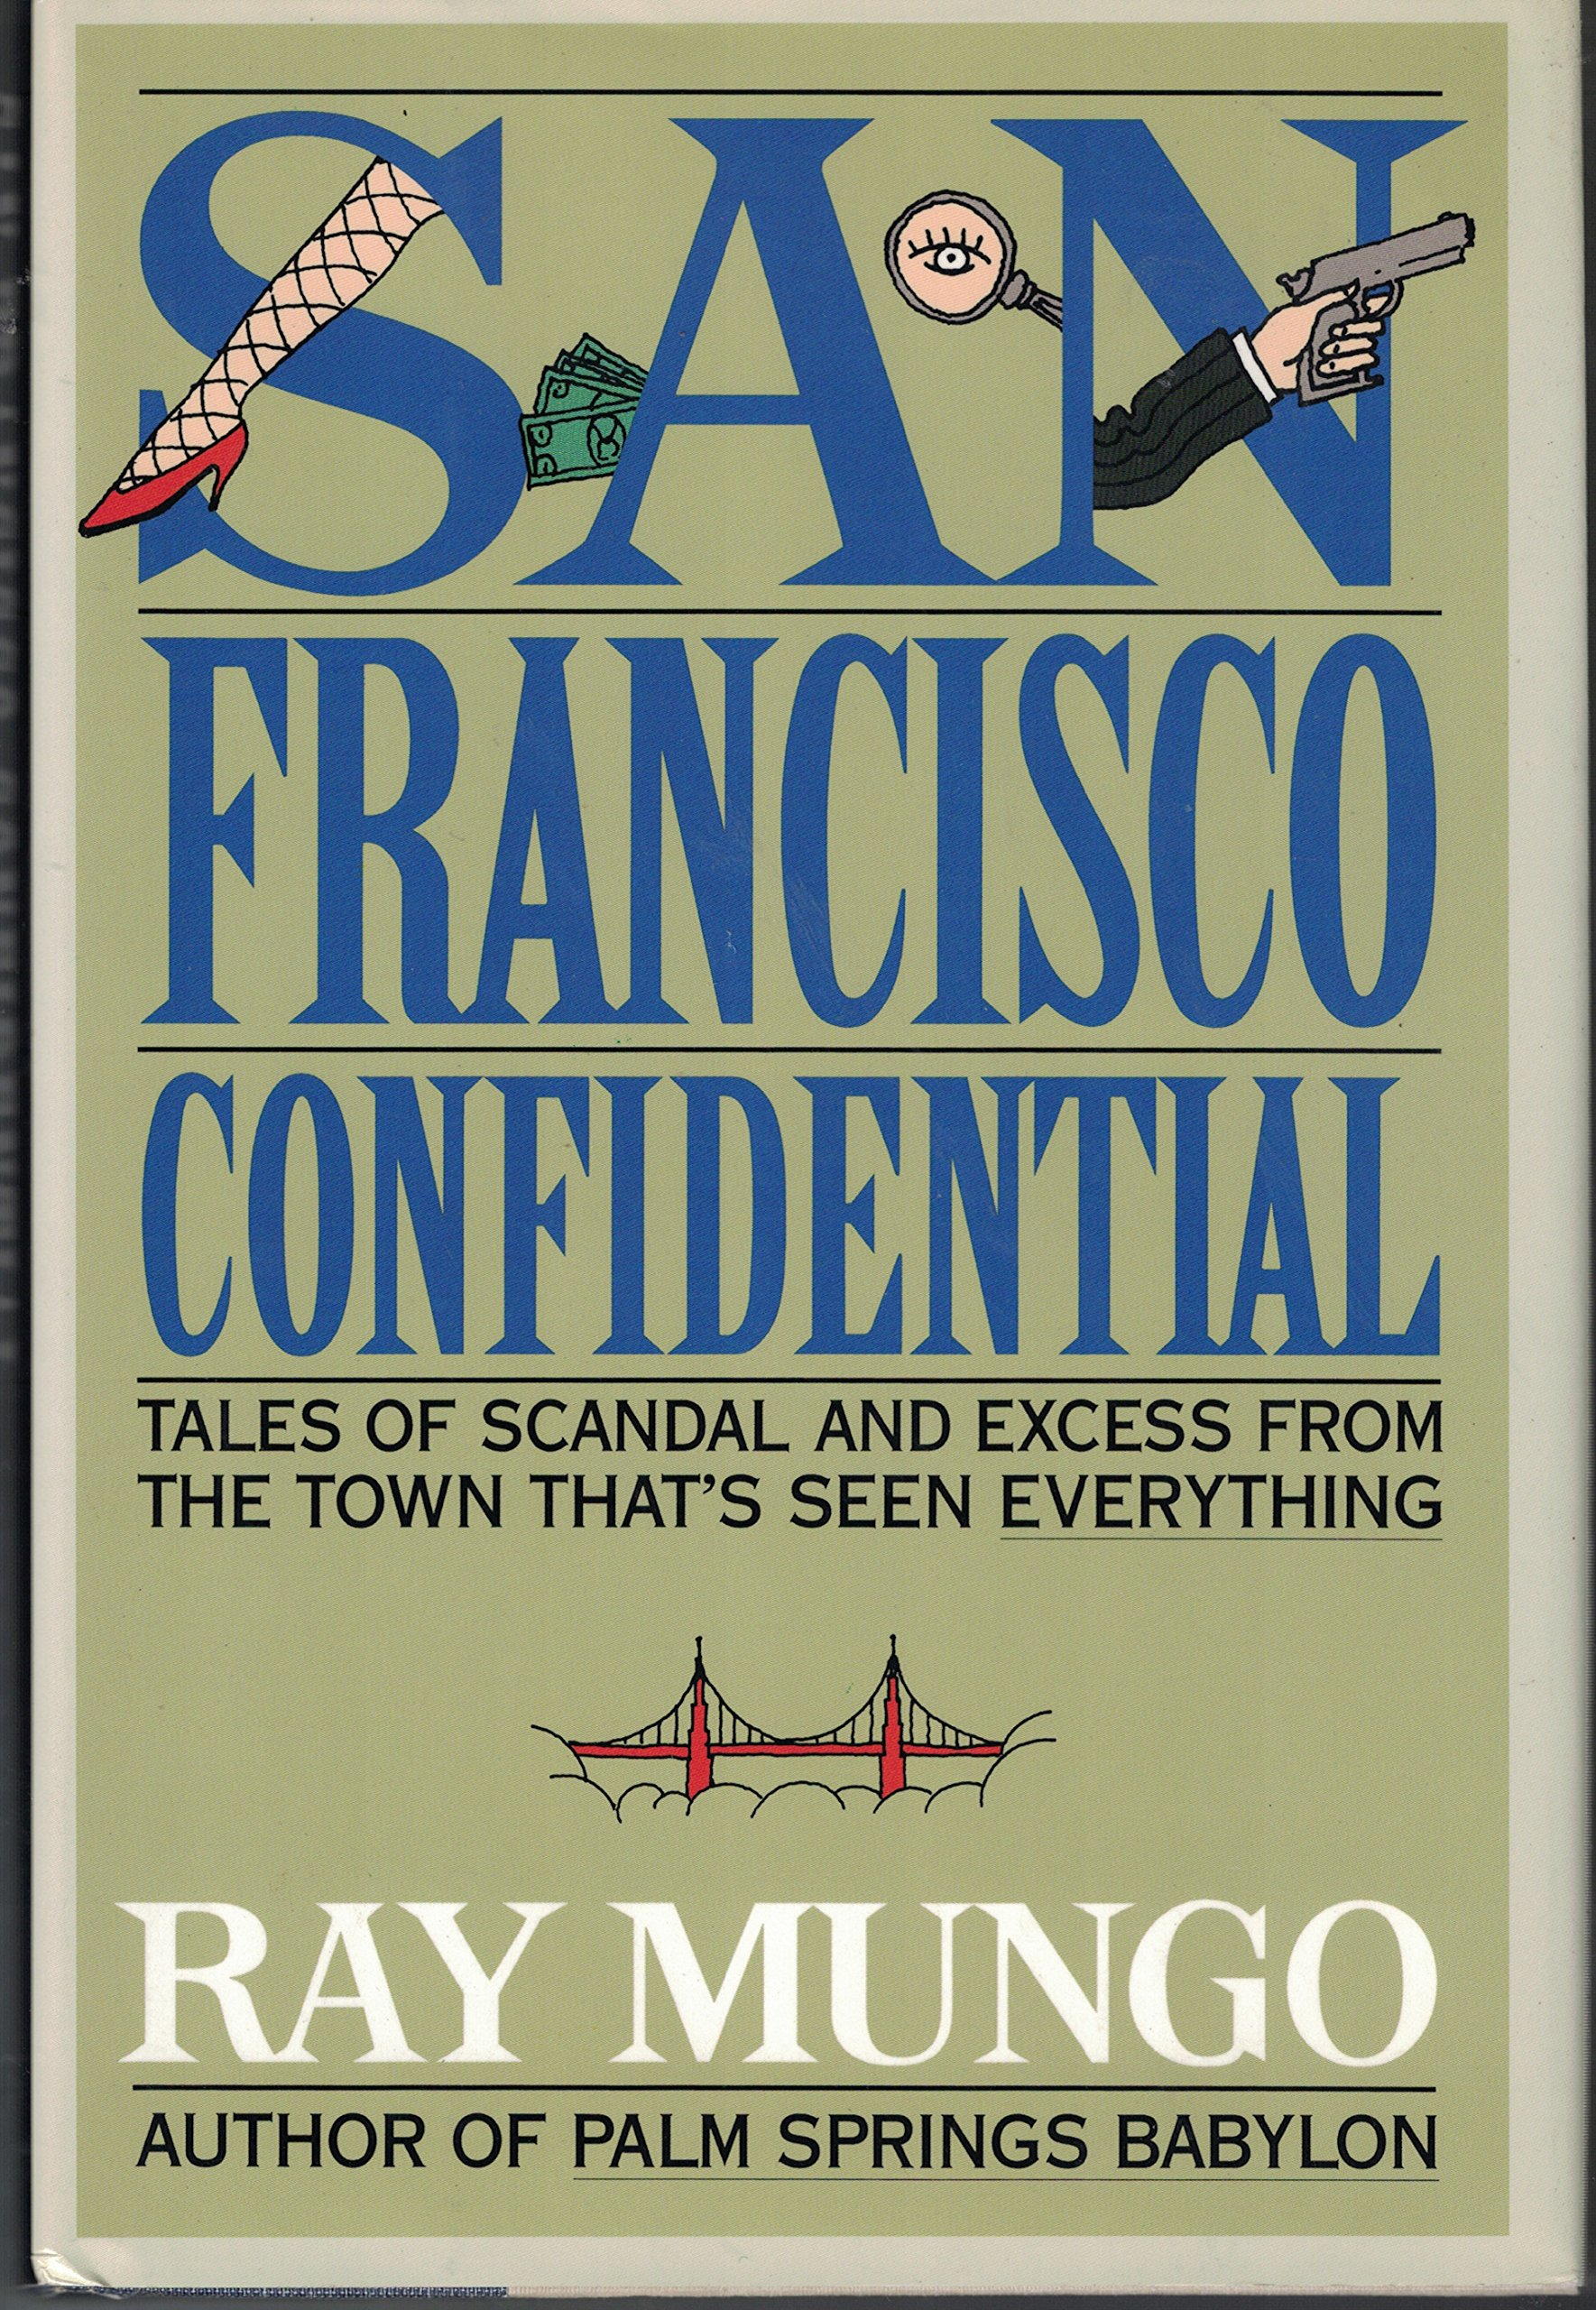 san francisco confidential tales of scandal and excess from the